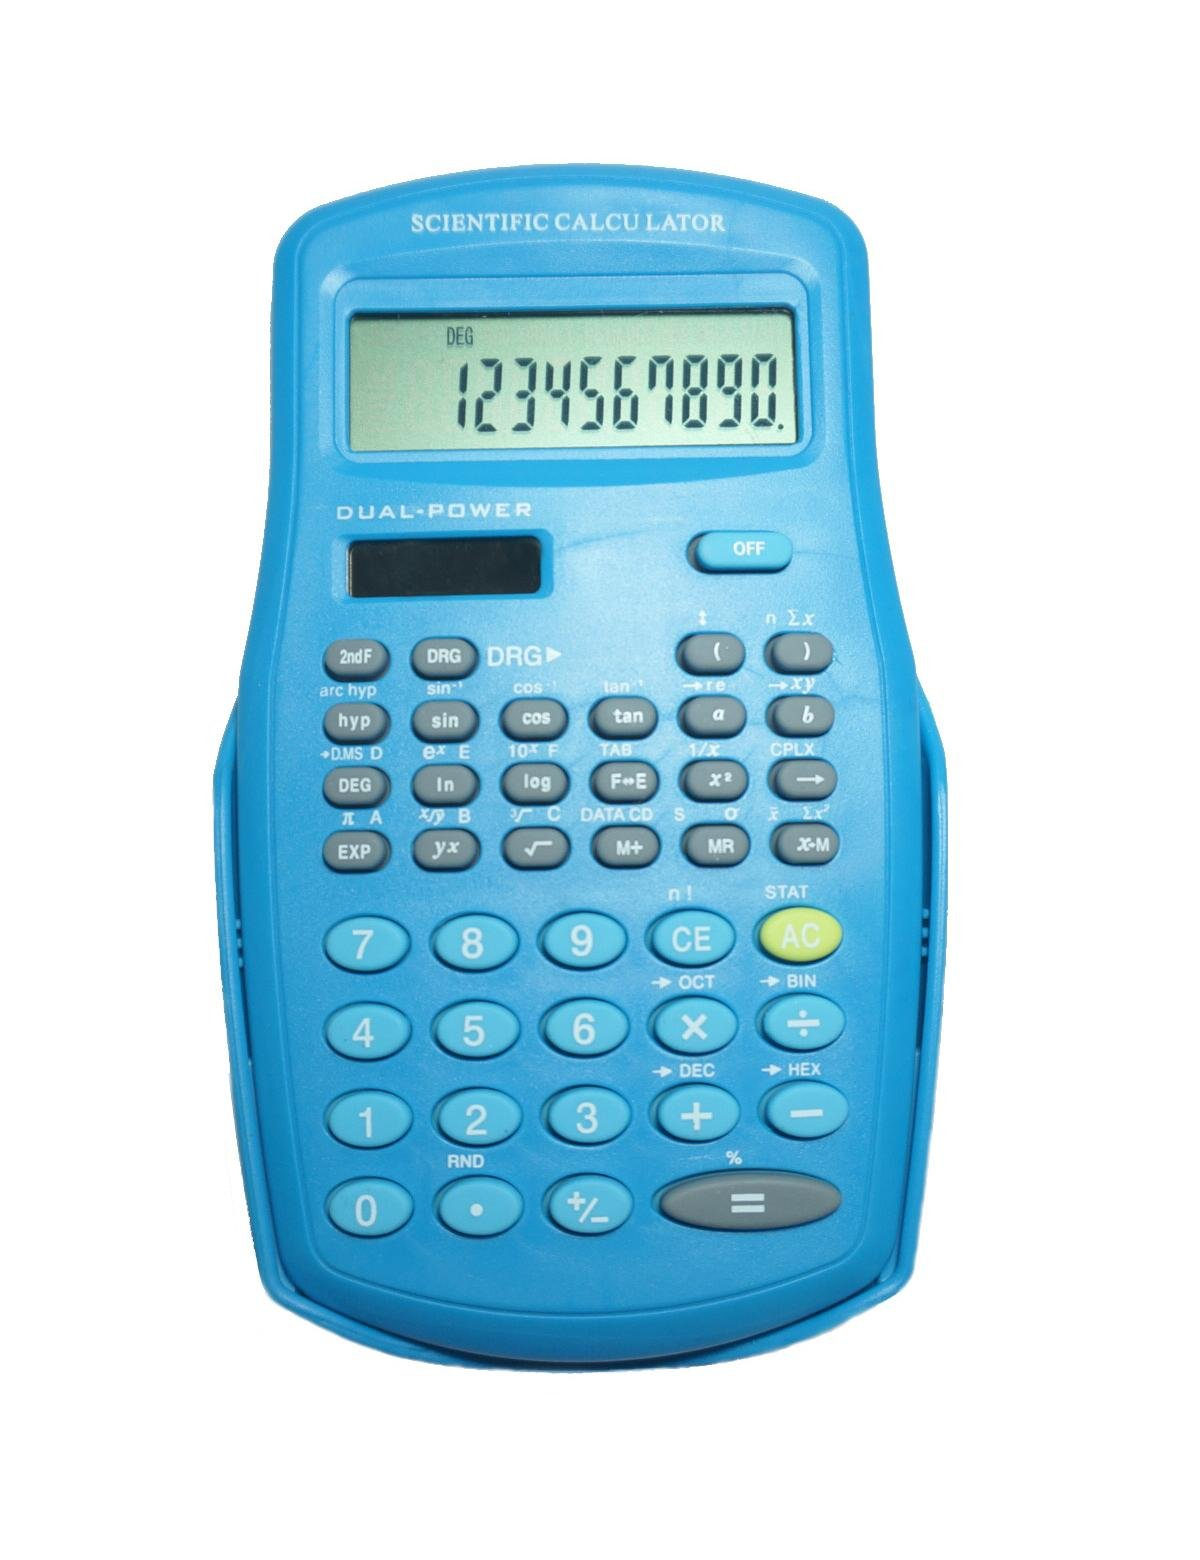 Scientific Calculator, Engineering Calculator BLUE, Function Science Calculator for Middle School Student, College Students and Engineers, 2-line Display (BLUE)